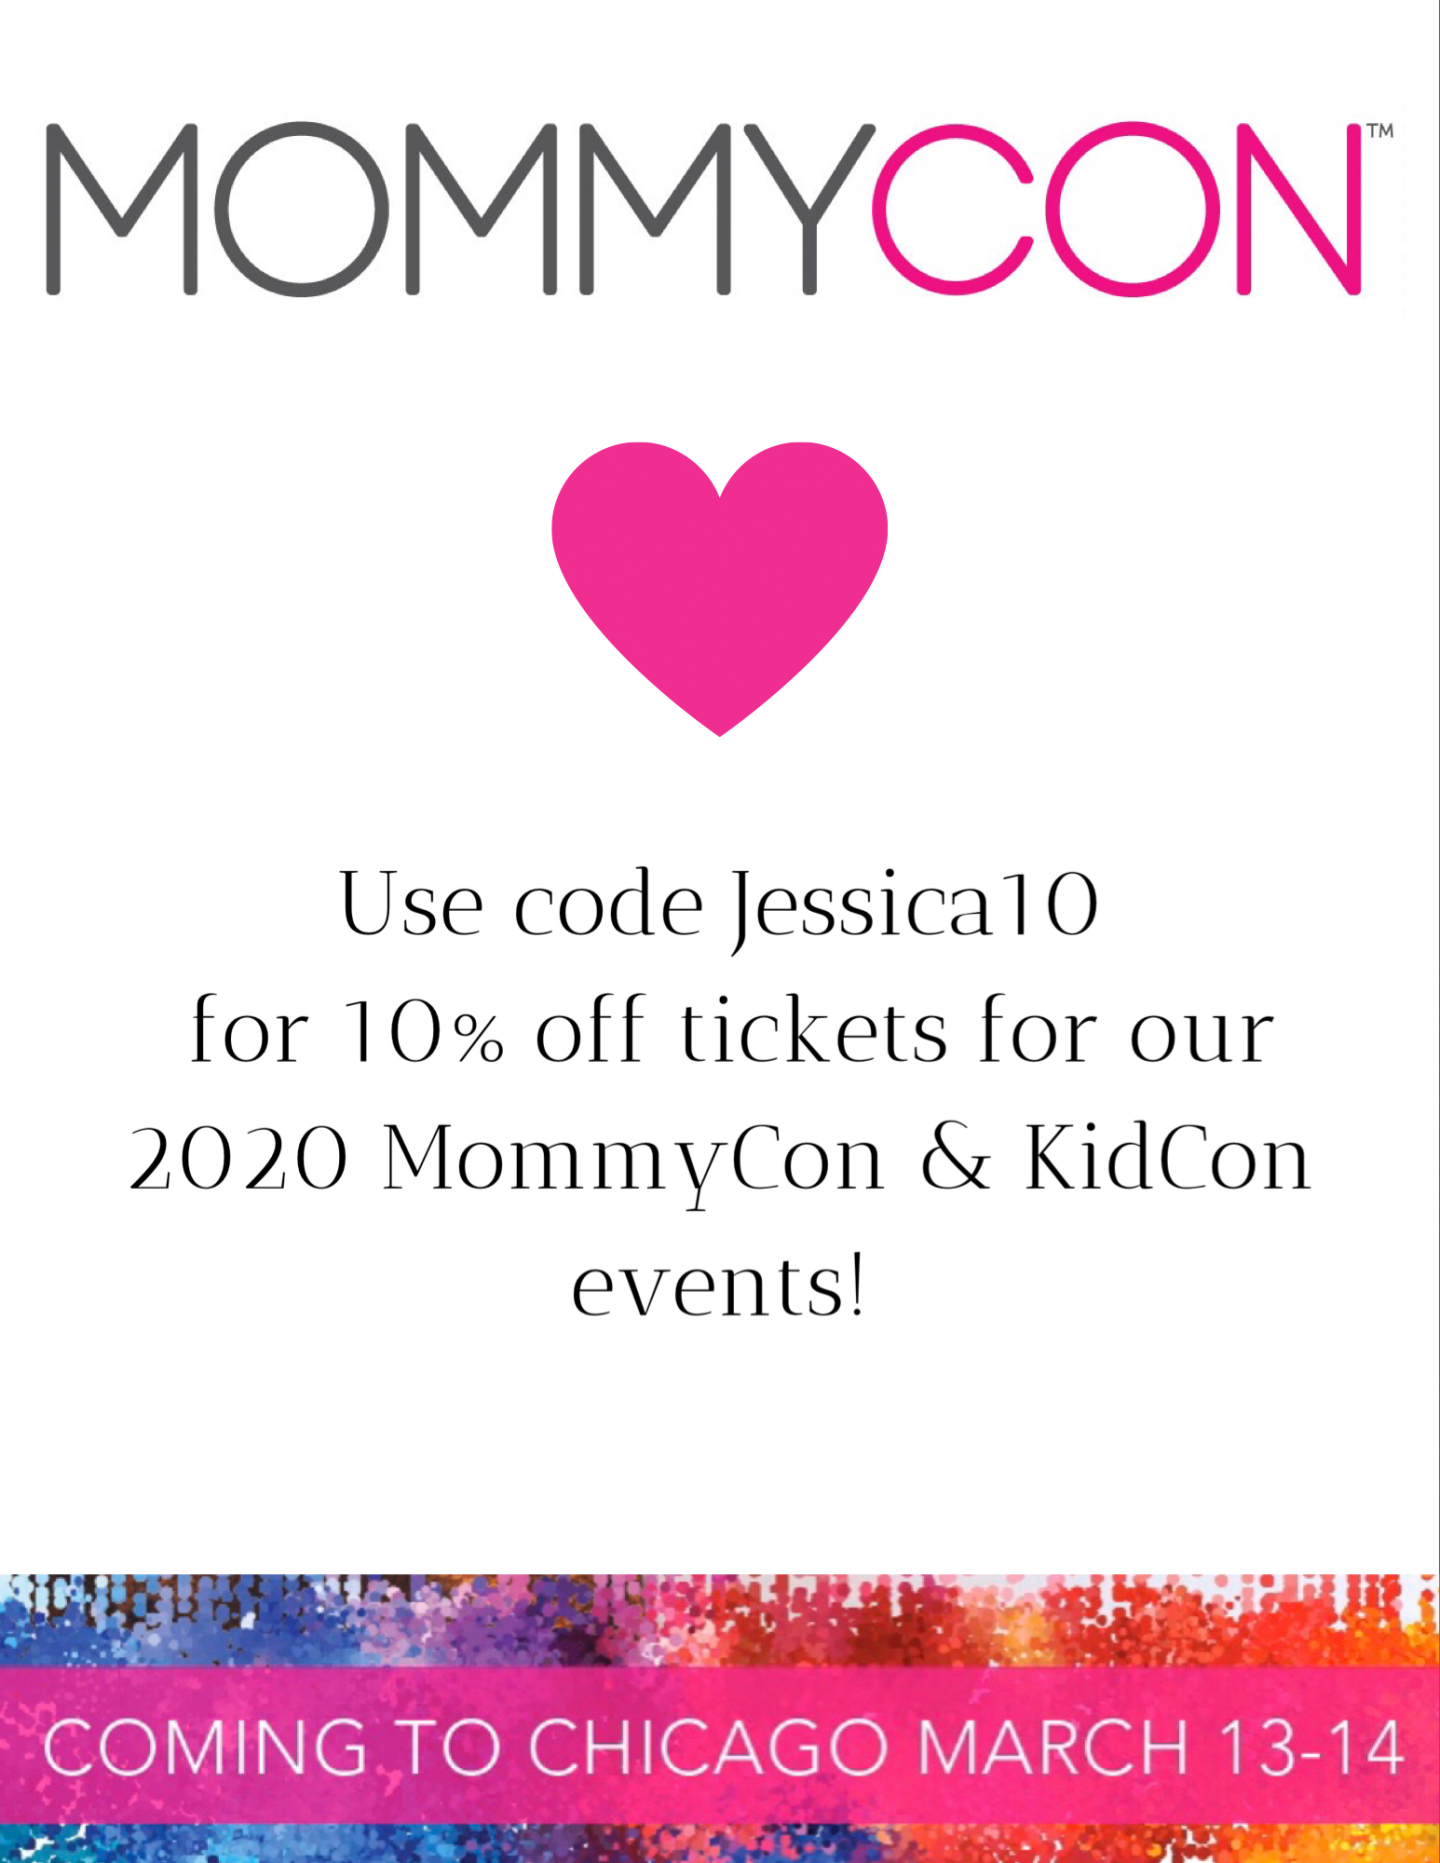 only one month left until Mommy Con